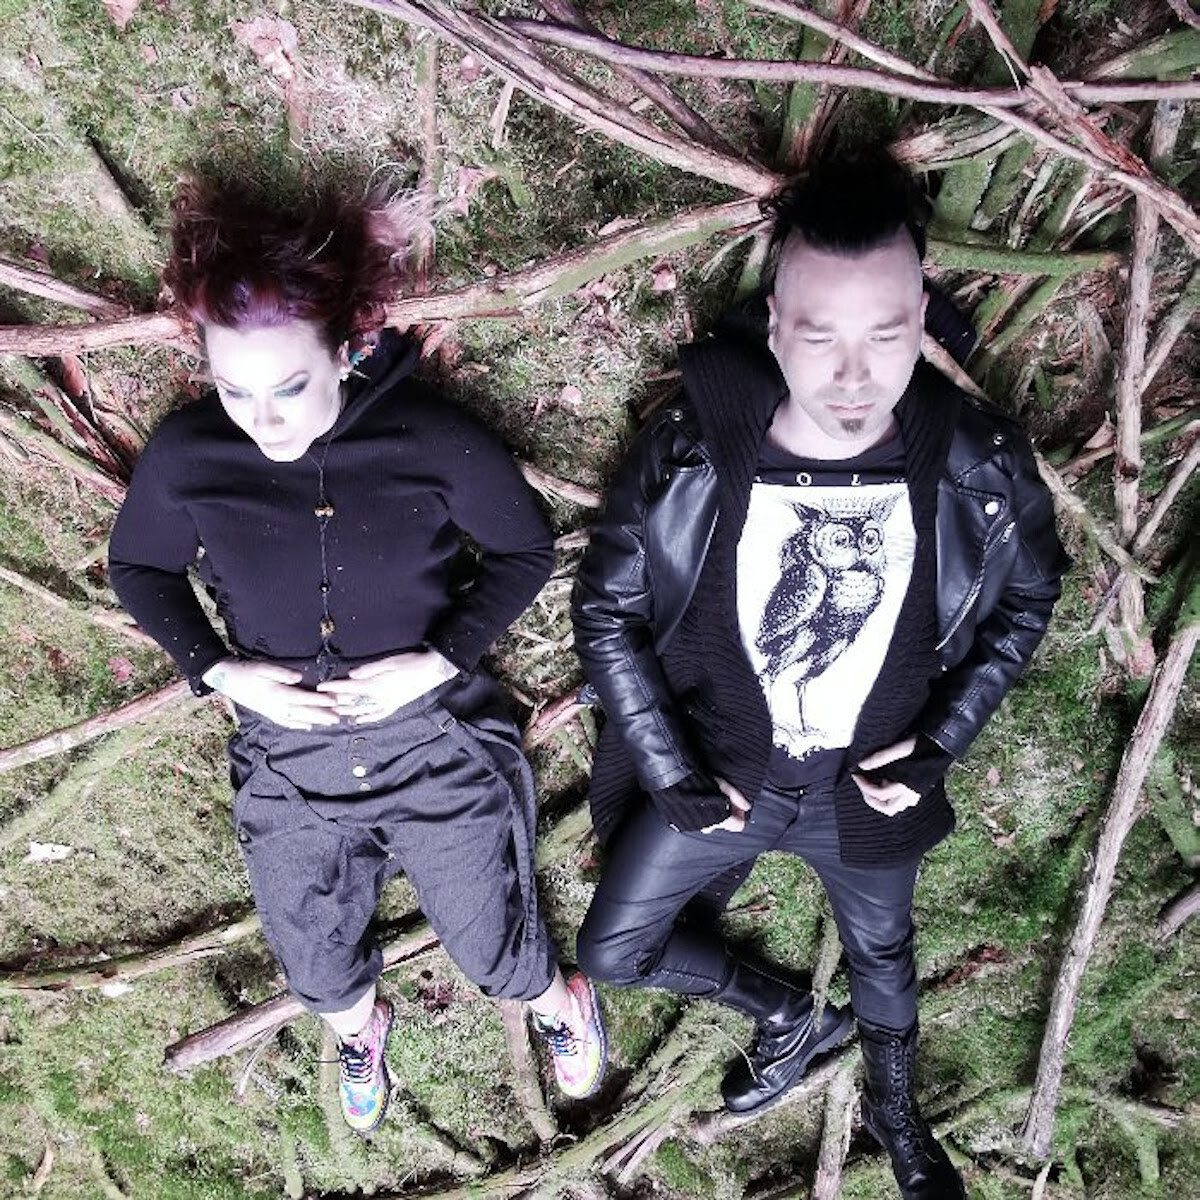 Valhall release new single 'Slithering'